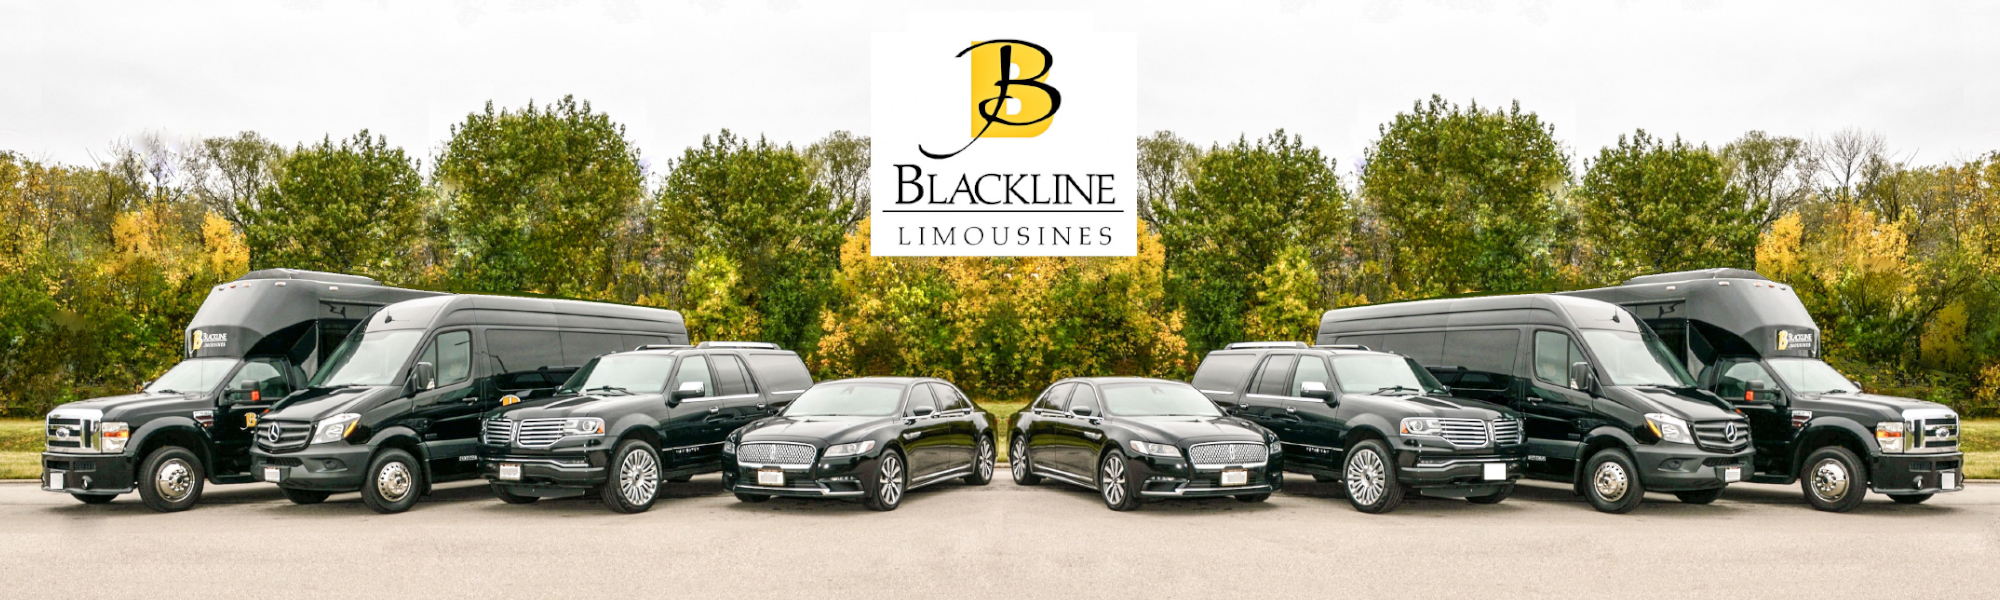 Wisconsin's Top Rated Local® Limousine Services Award Winner: Blackline Limousines